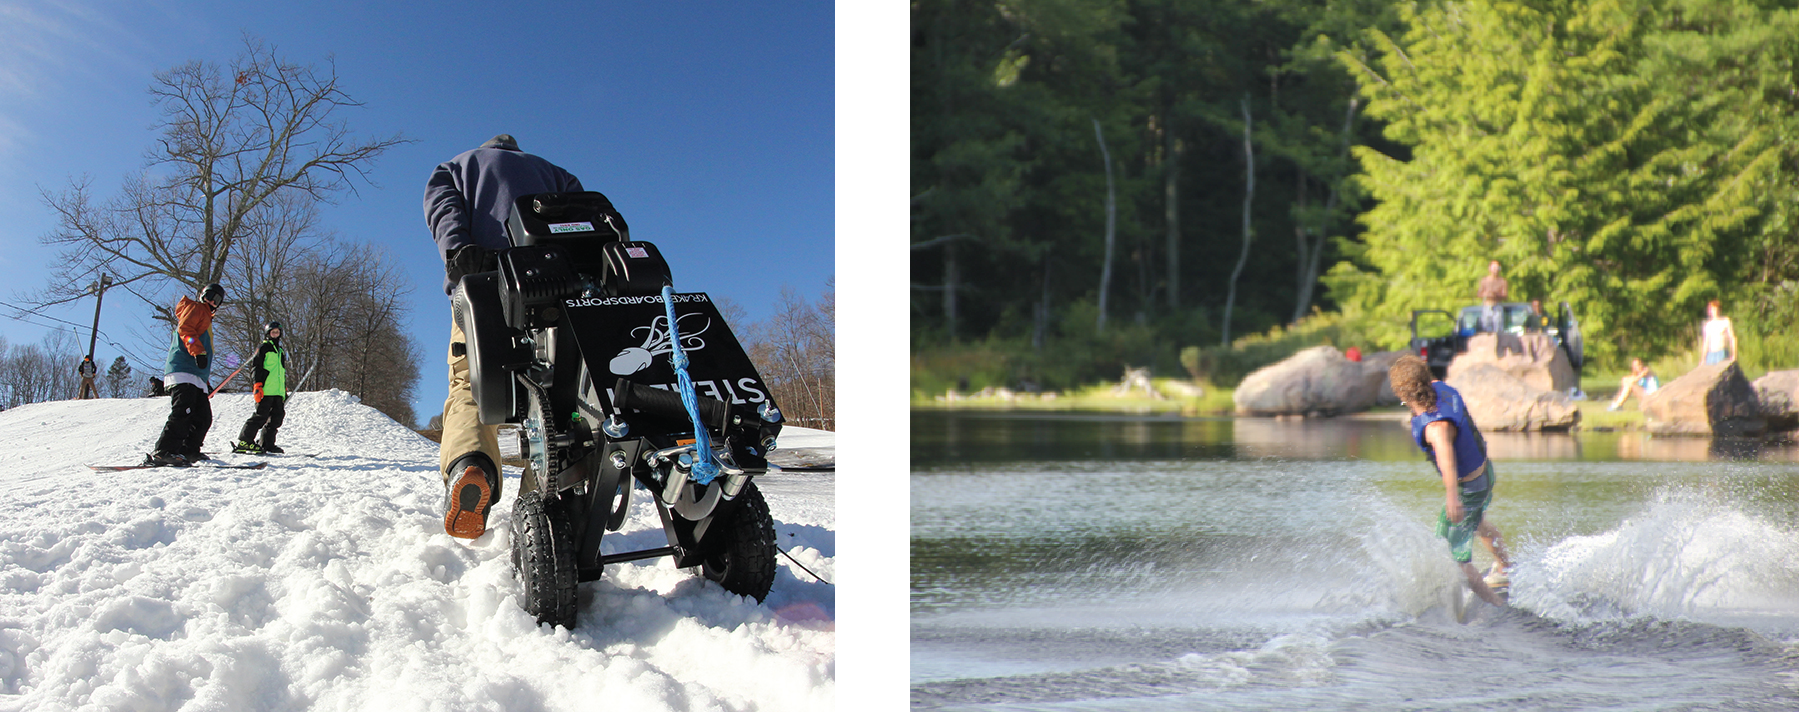 A photograph shows a person climbing a snow-covered hill carrying a winch on wheels. A photograph shows a person ski-boarding on a lake.